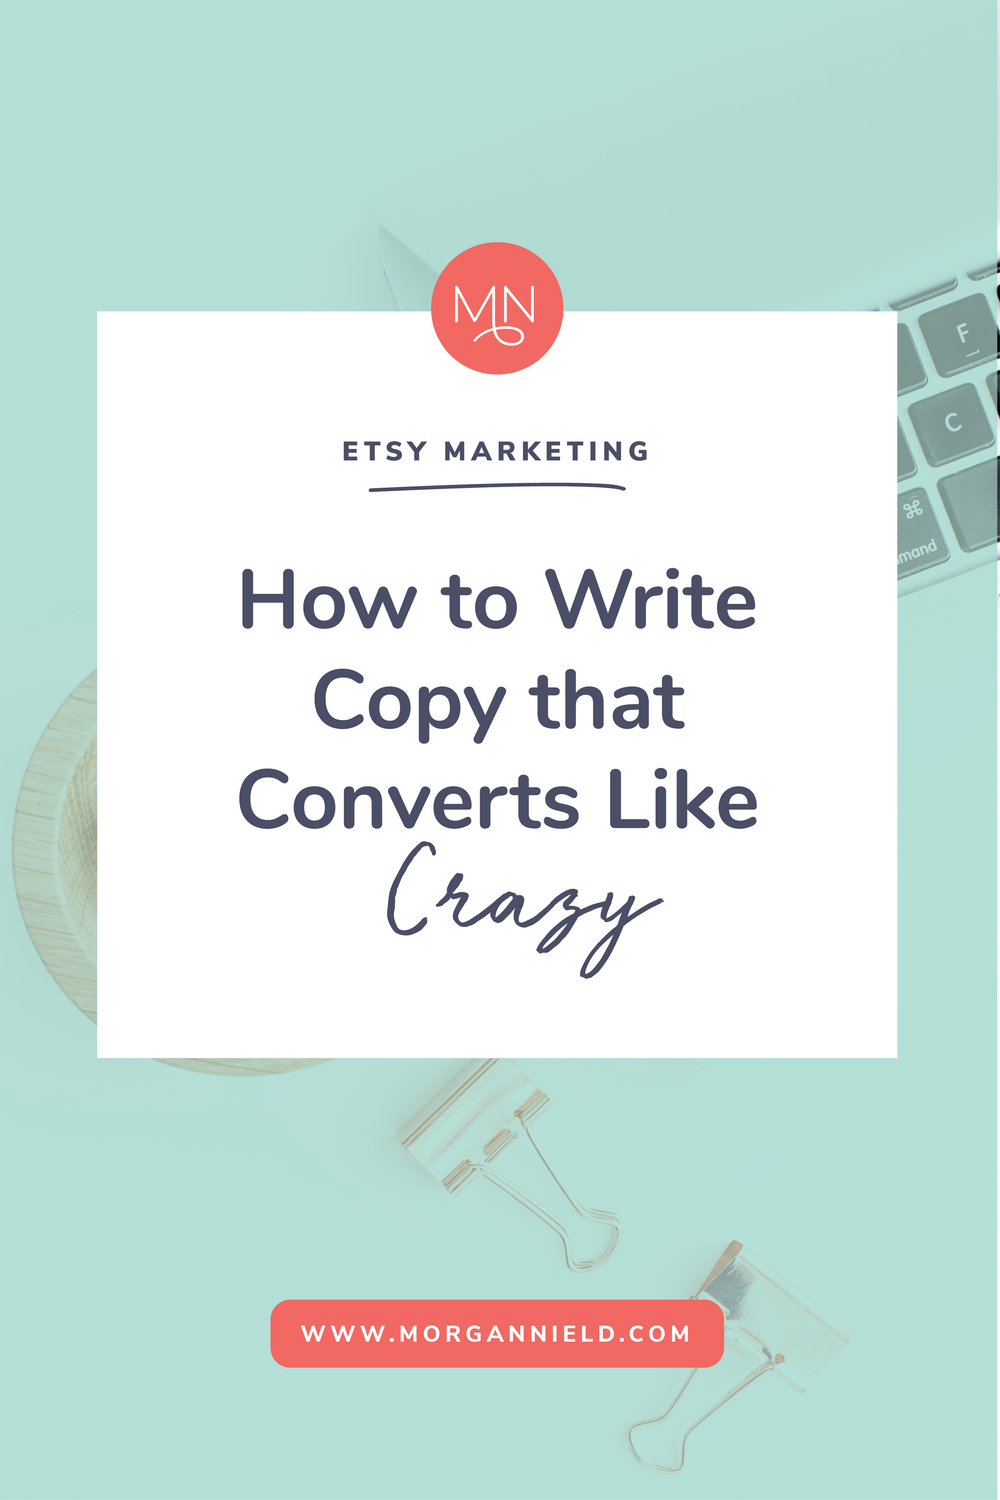 _5BB_5D_How_to_write_copy_that_converts_like_crazy-03.png